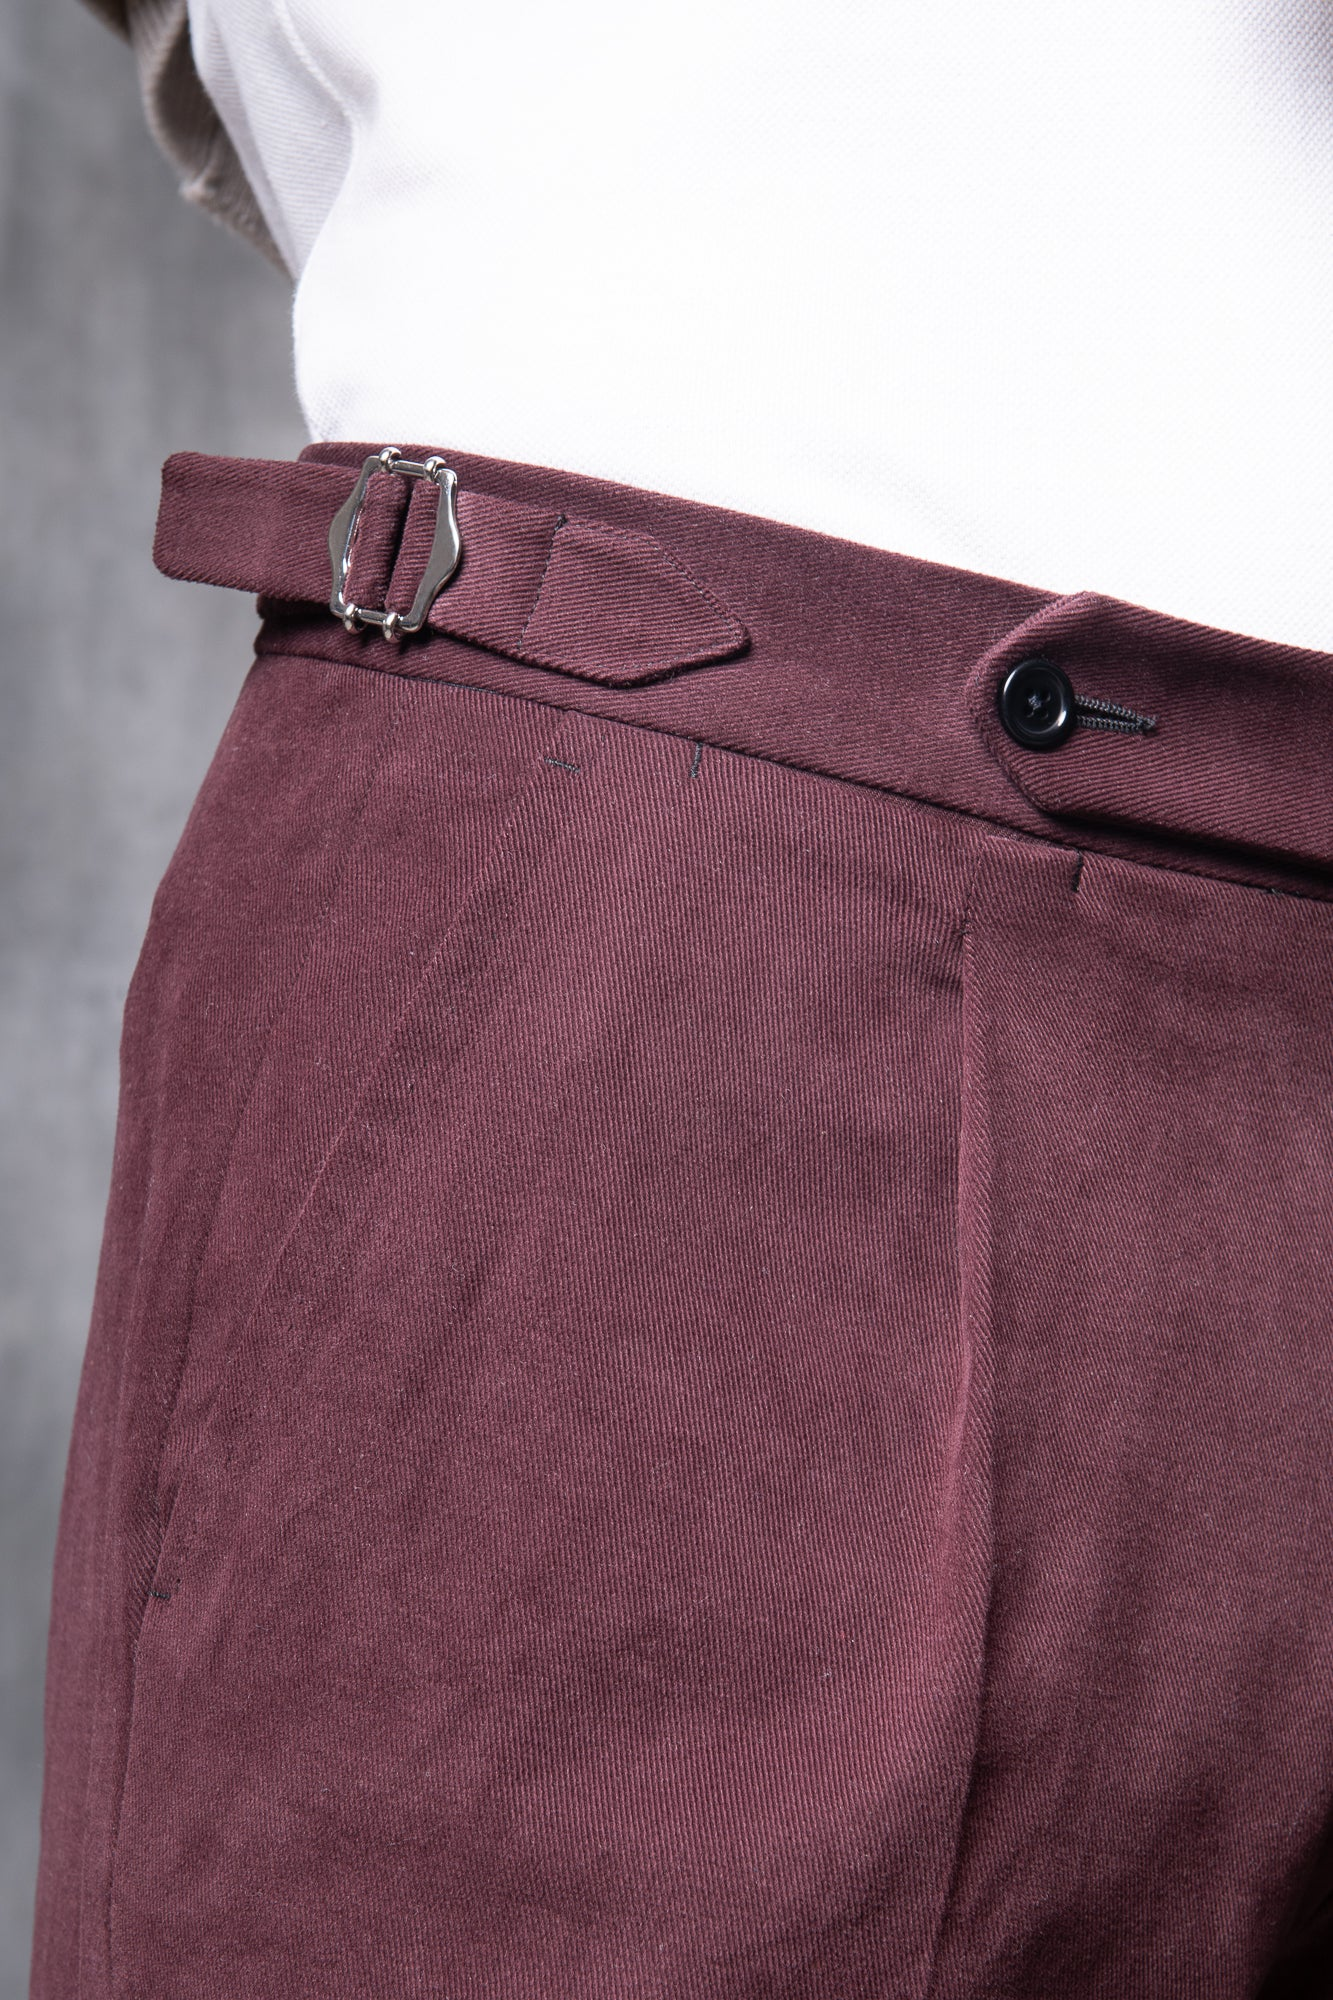 Bordeaux Cotton Biella Trousers  - Made in Italy PREORDER/EXPECTED SHIPPING 5 OCTOBER